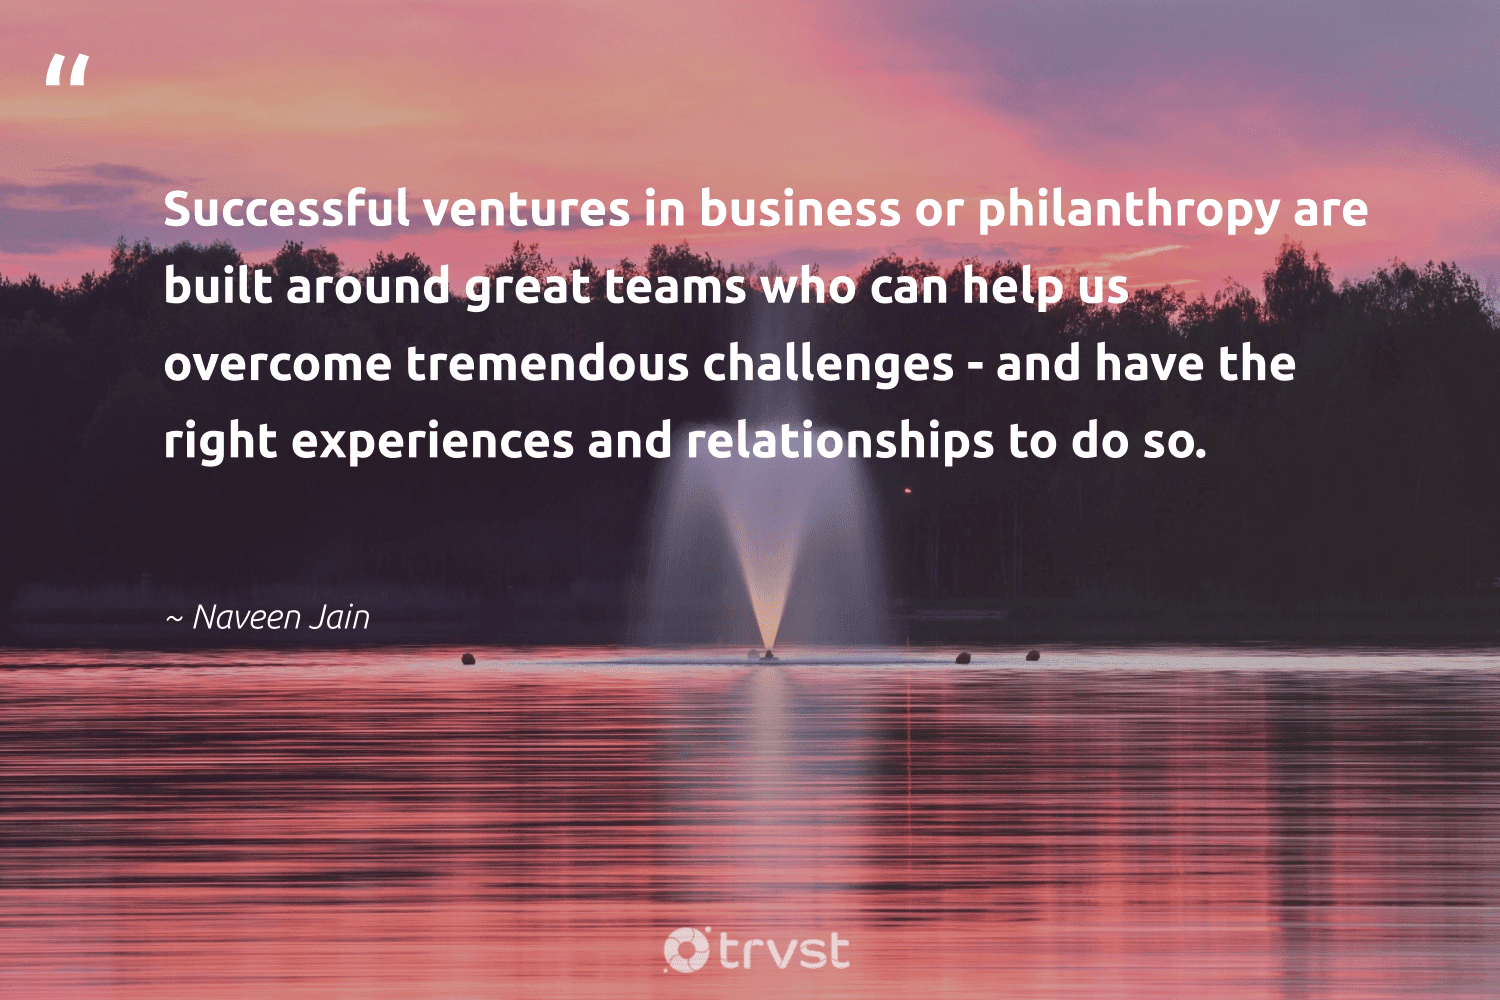 """""""Successful ventures in business or philanthropy are built around great teams who can help us overcome tremendous challenges - and have the right experiences and relationships to do so.""""  - Naveen Jain #trvst #quotes #philanthropy #philanthropic #changemakers #itscooltobekind #socialchange #giveforthefuture #togetherwecan #bethechange #ecoconscious #dosomething"""